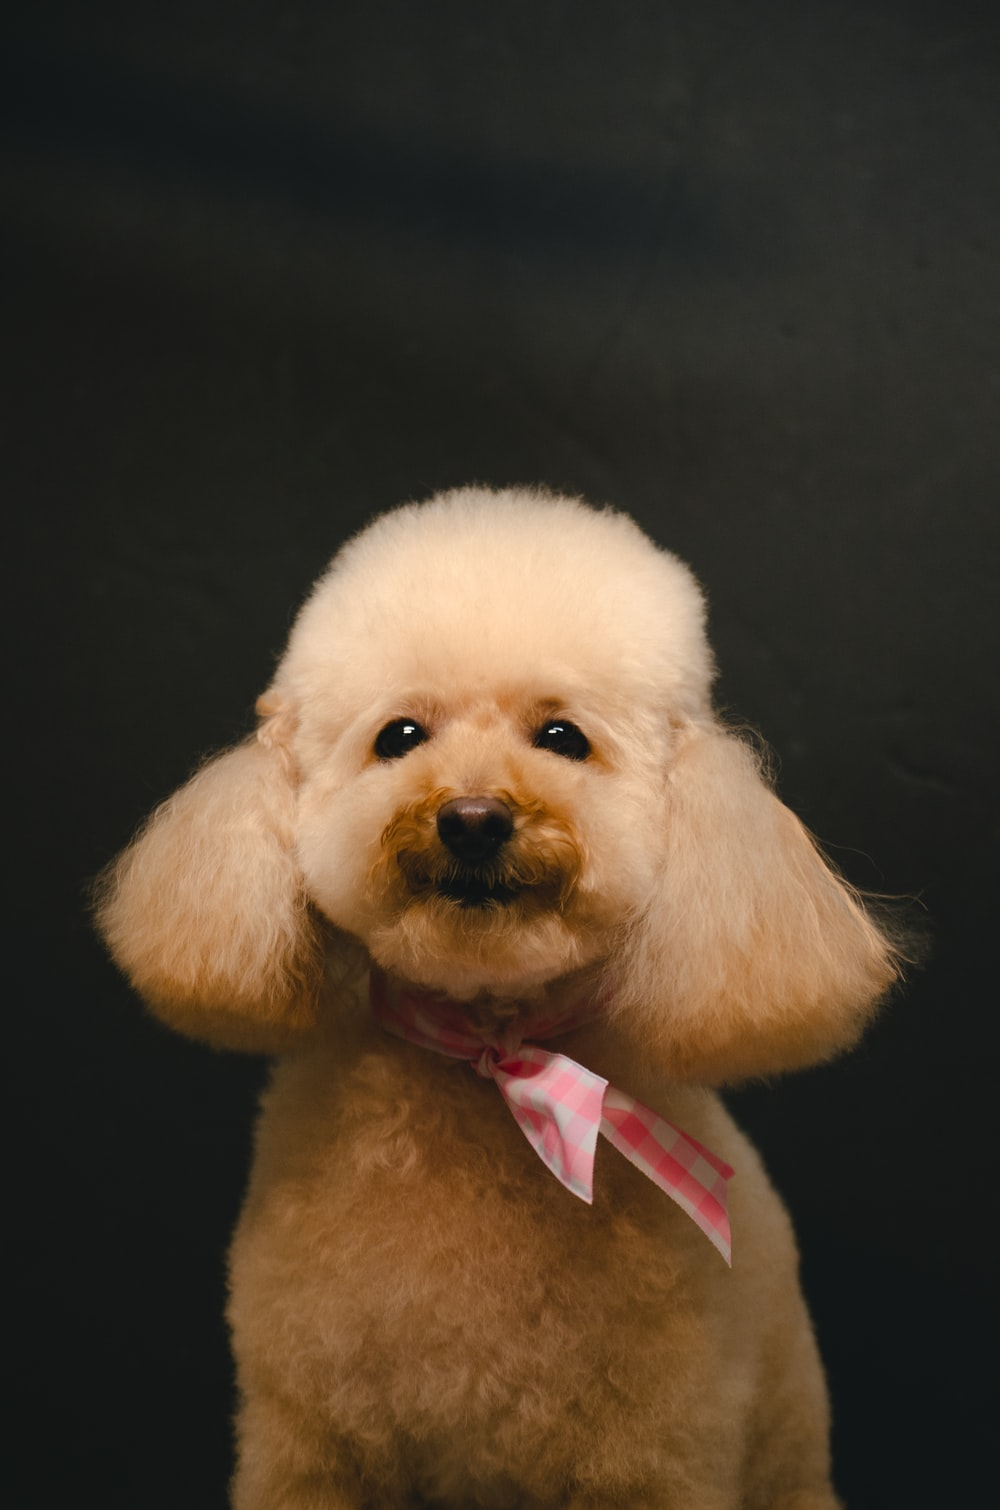 white poodle with pink and white plaid bowtie